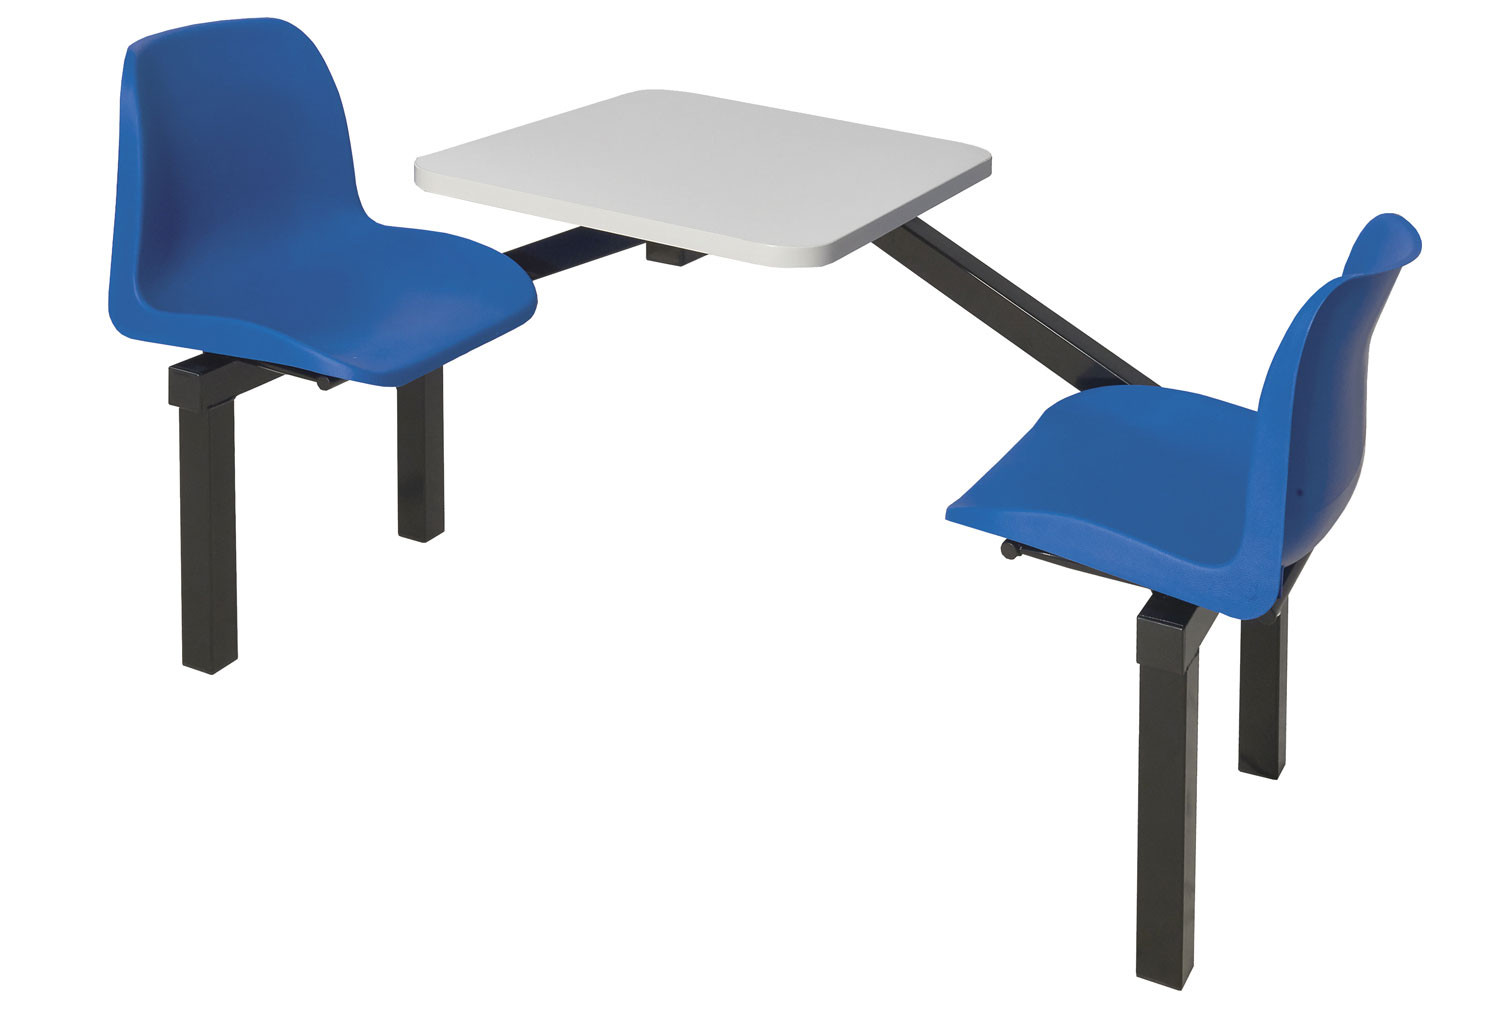 2 Seater Economy Canteen Unit